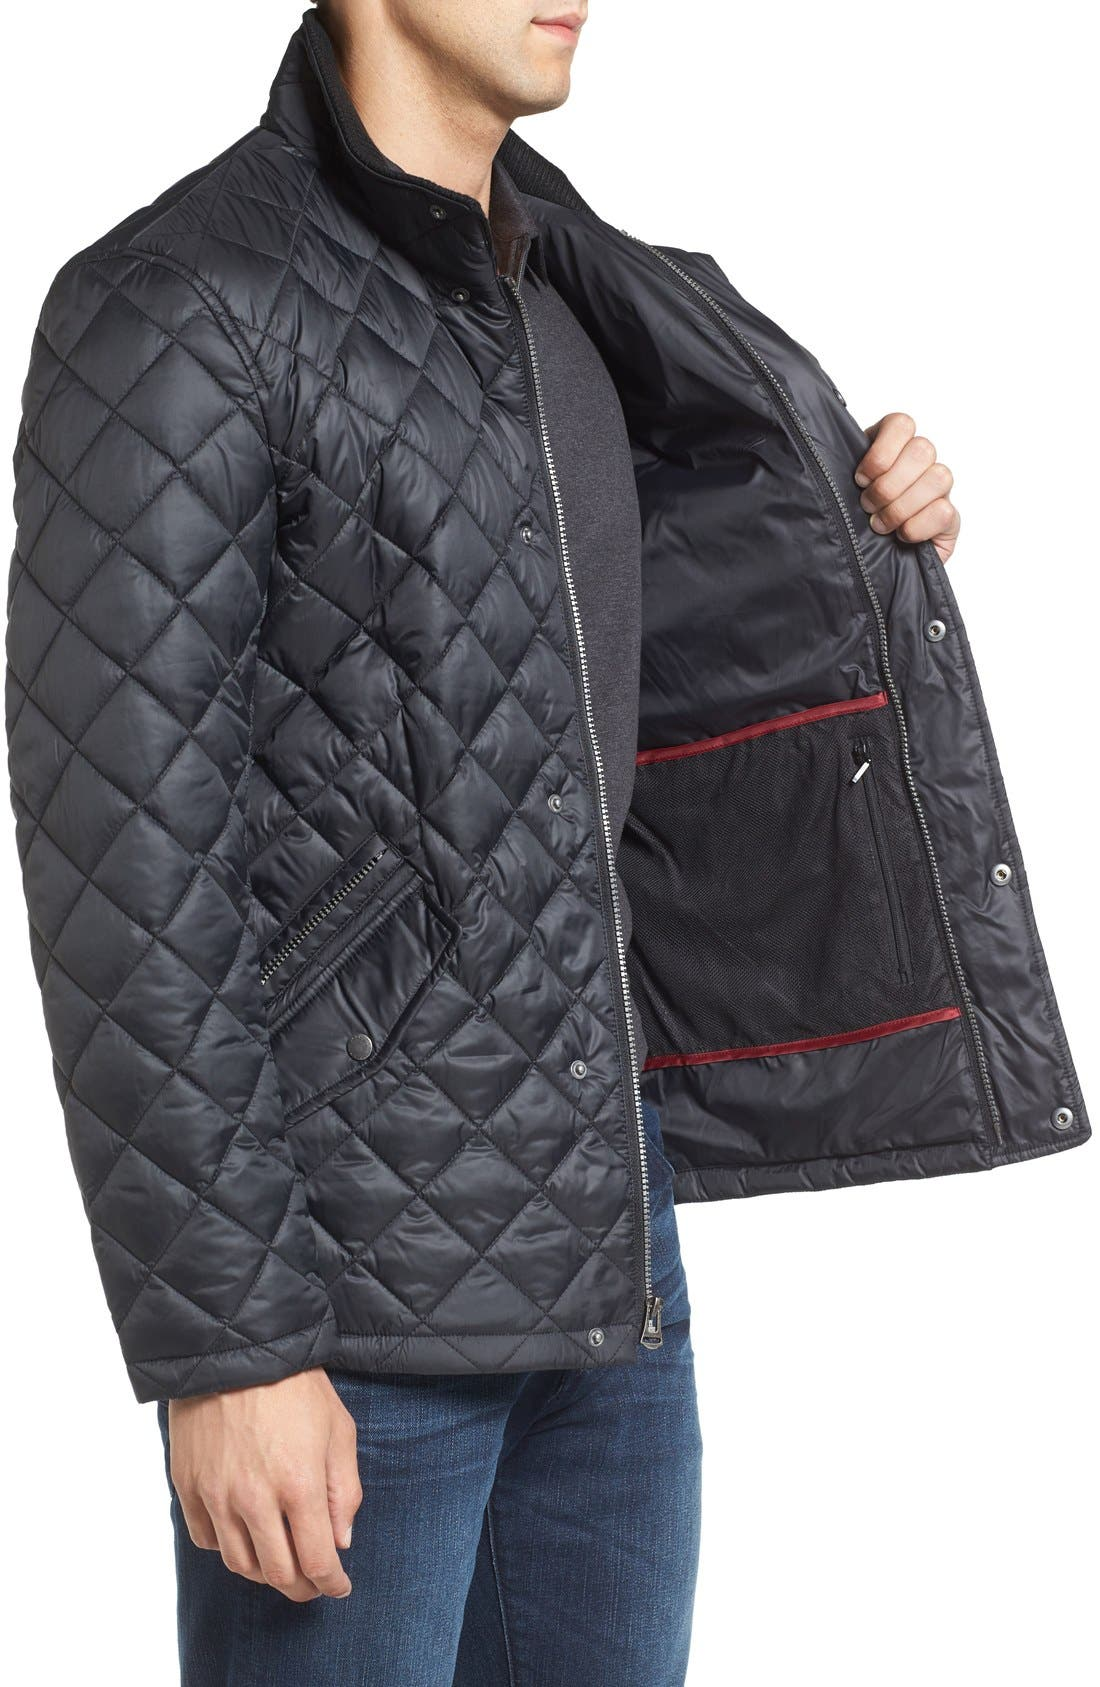 Diamond Quilted Jacket,                             Alternate thumbnail 13, color,                             Navy